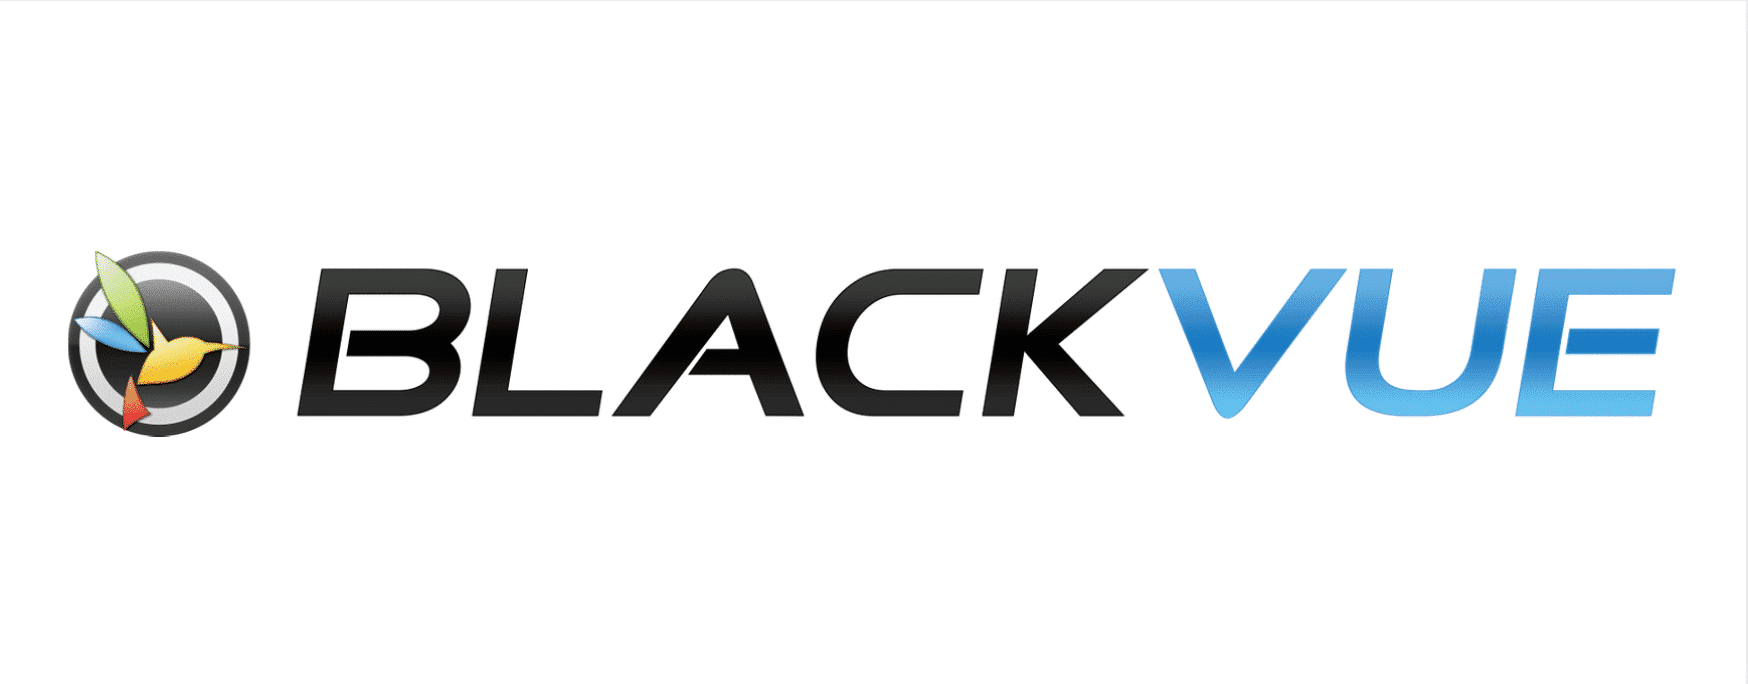 Blackvue Dashcam Canada